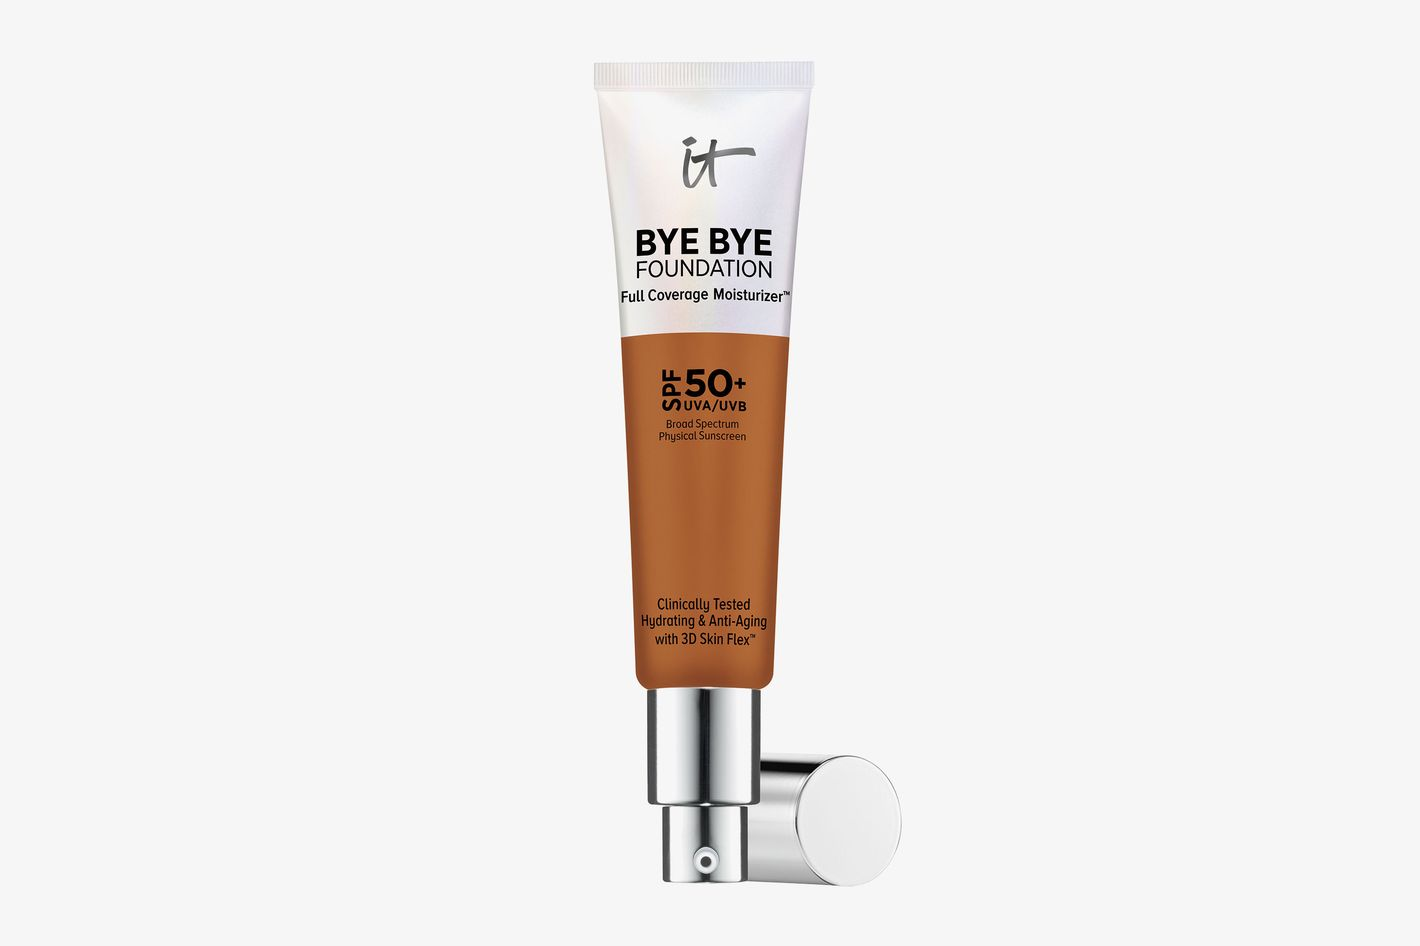 Bye Bye Foundation Full Coverage Moisturizer with SPF 50+ Rich